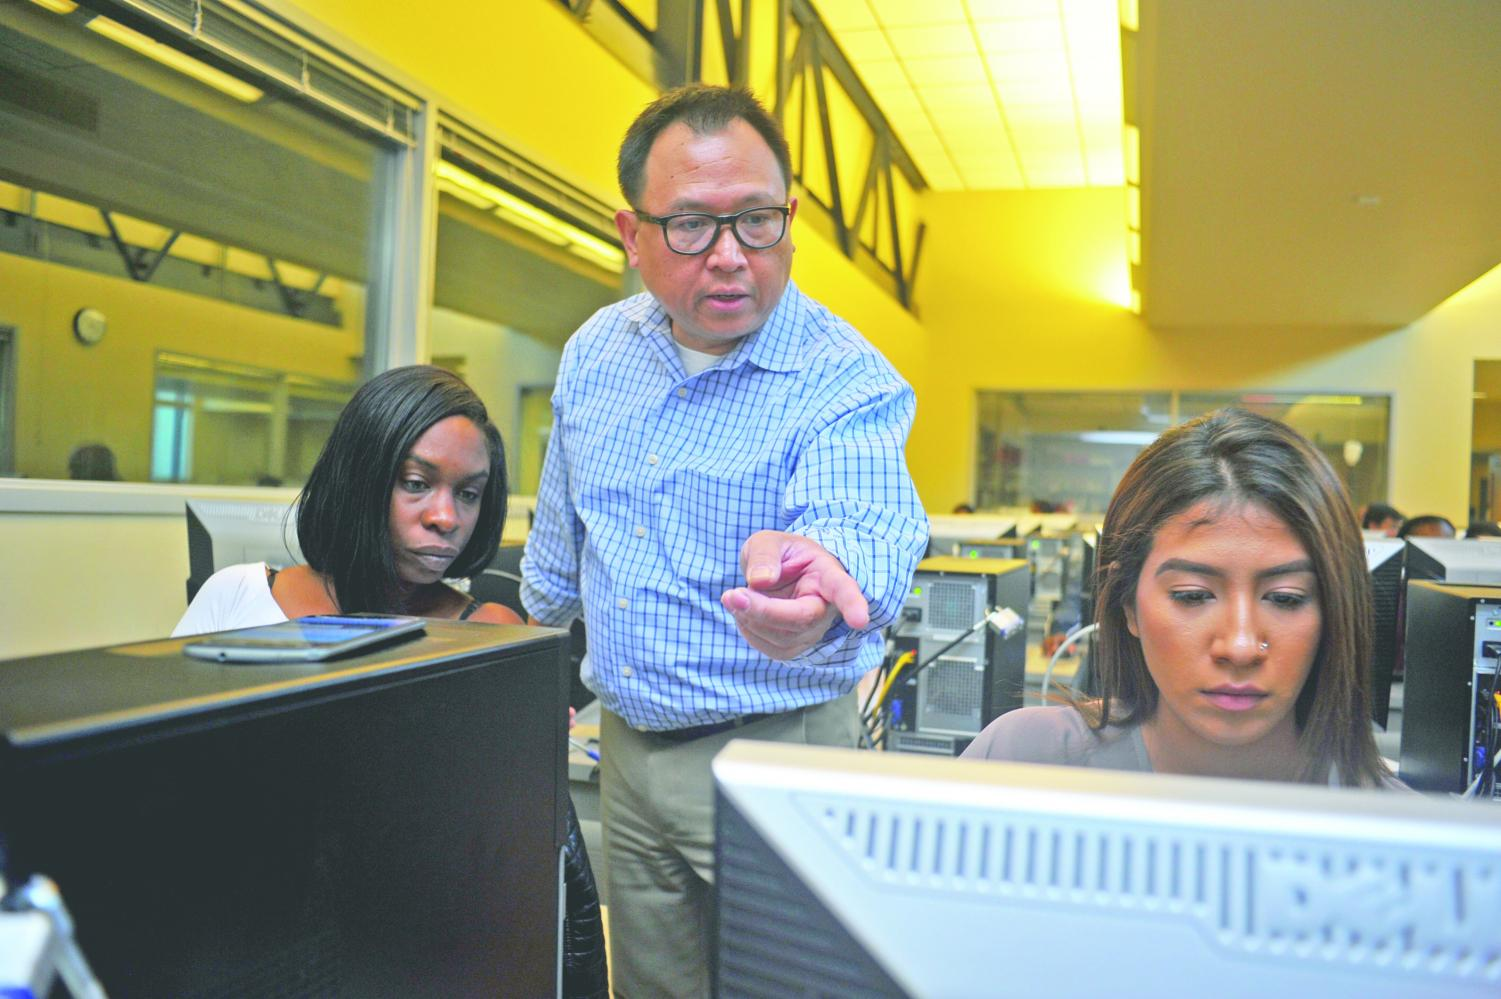 Computer science professor Francis Reyes (middle) guides nursing major Latonya Thomas (left) and undecided major Crystal Morales (right) through a computer science lecture in CTC-115 on Nov. 6.